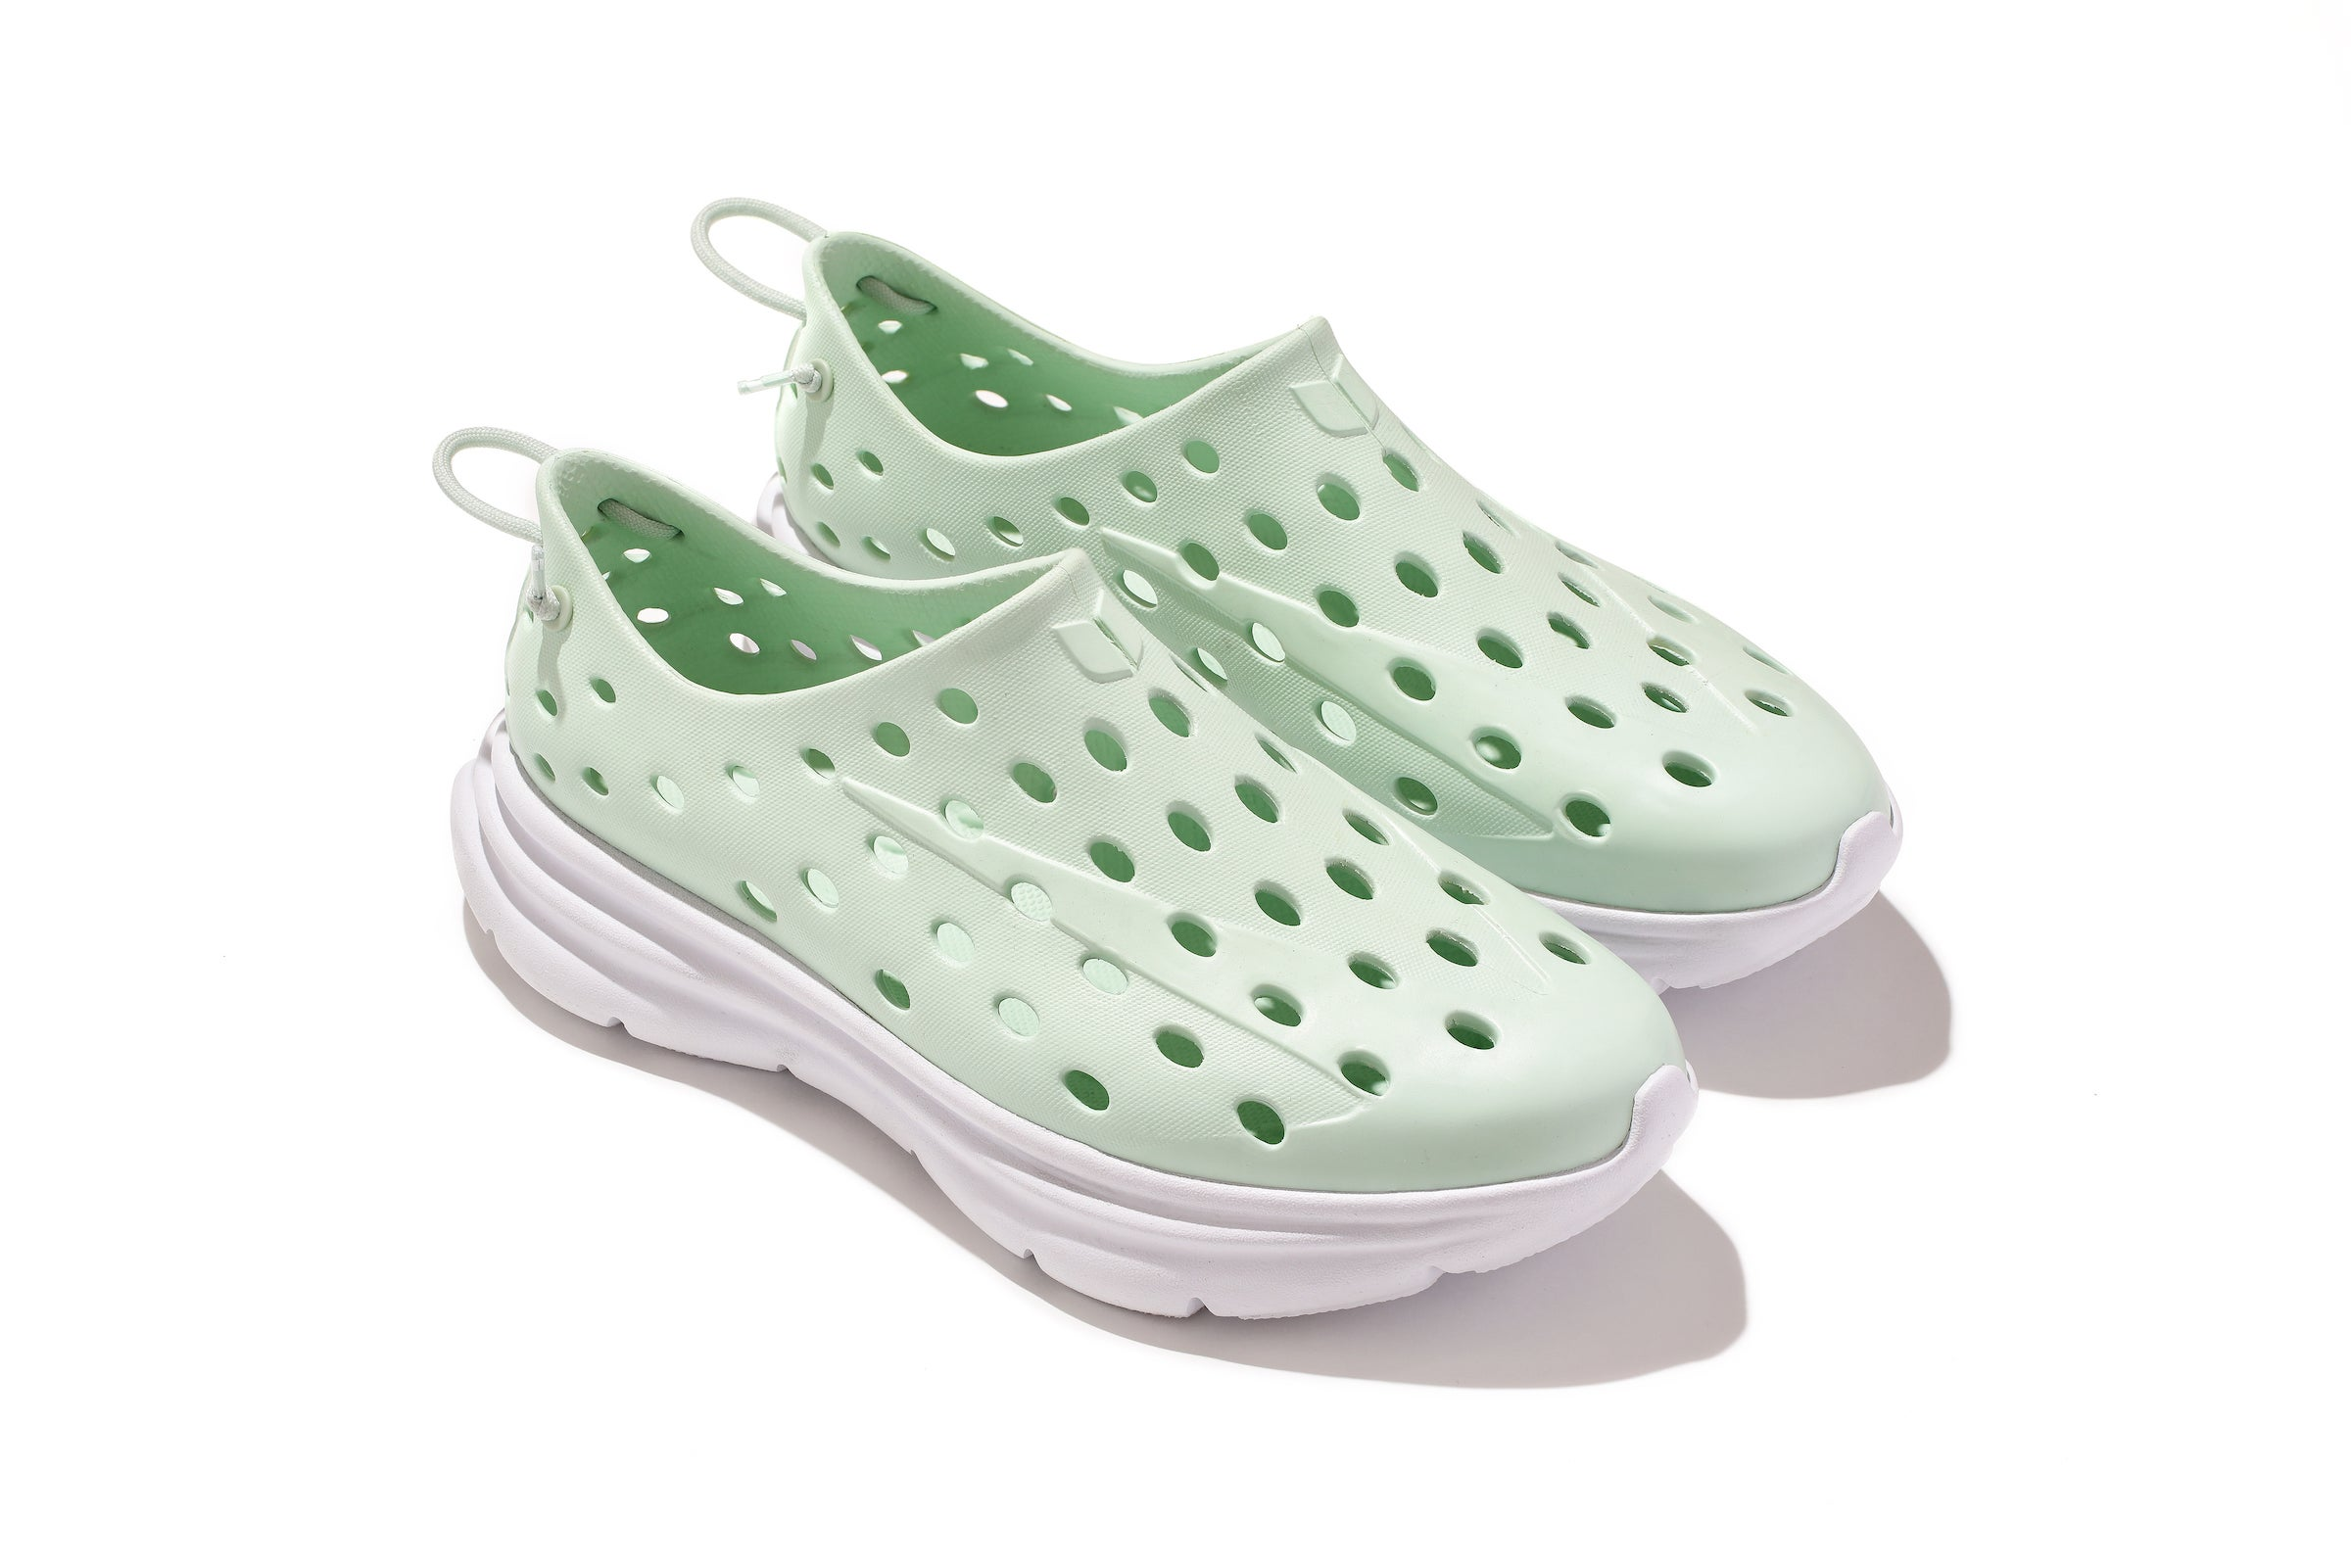 Kane's revive shoe in seafoam green